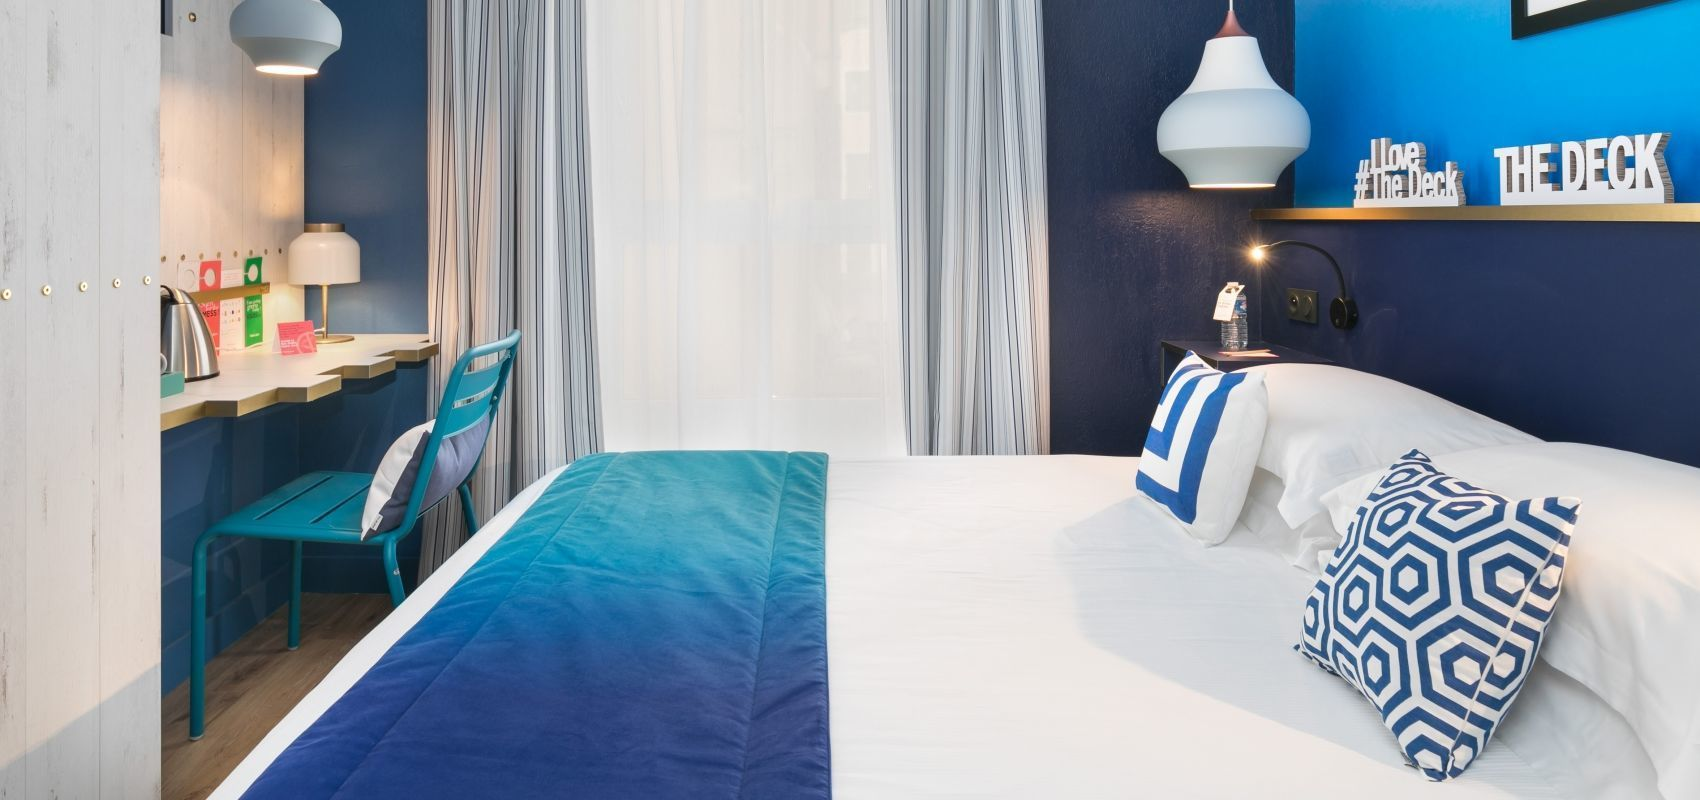 The Deck Hotel par HappyCulture - Chambre